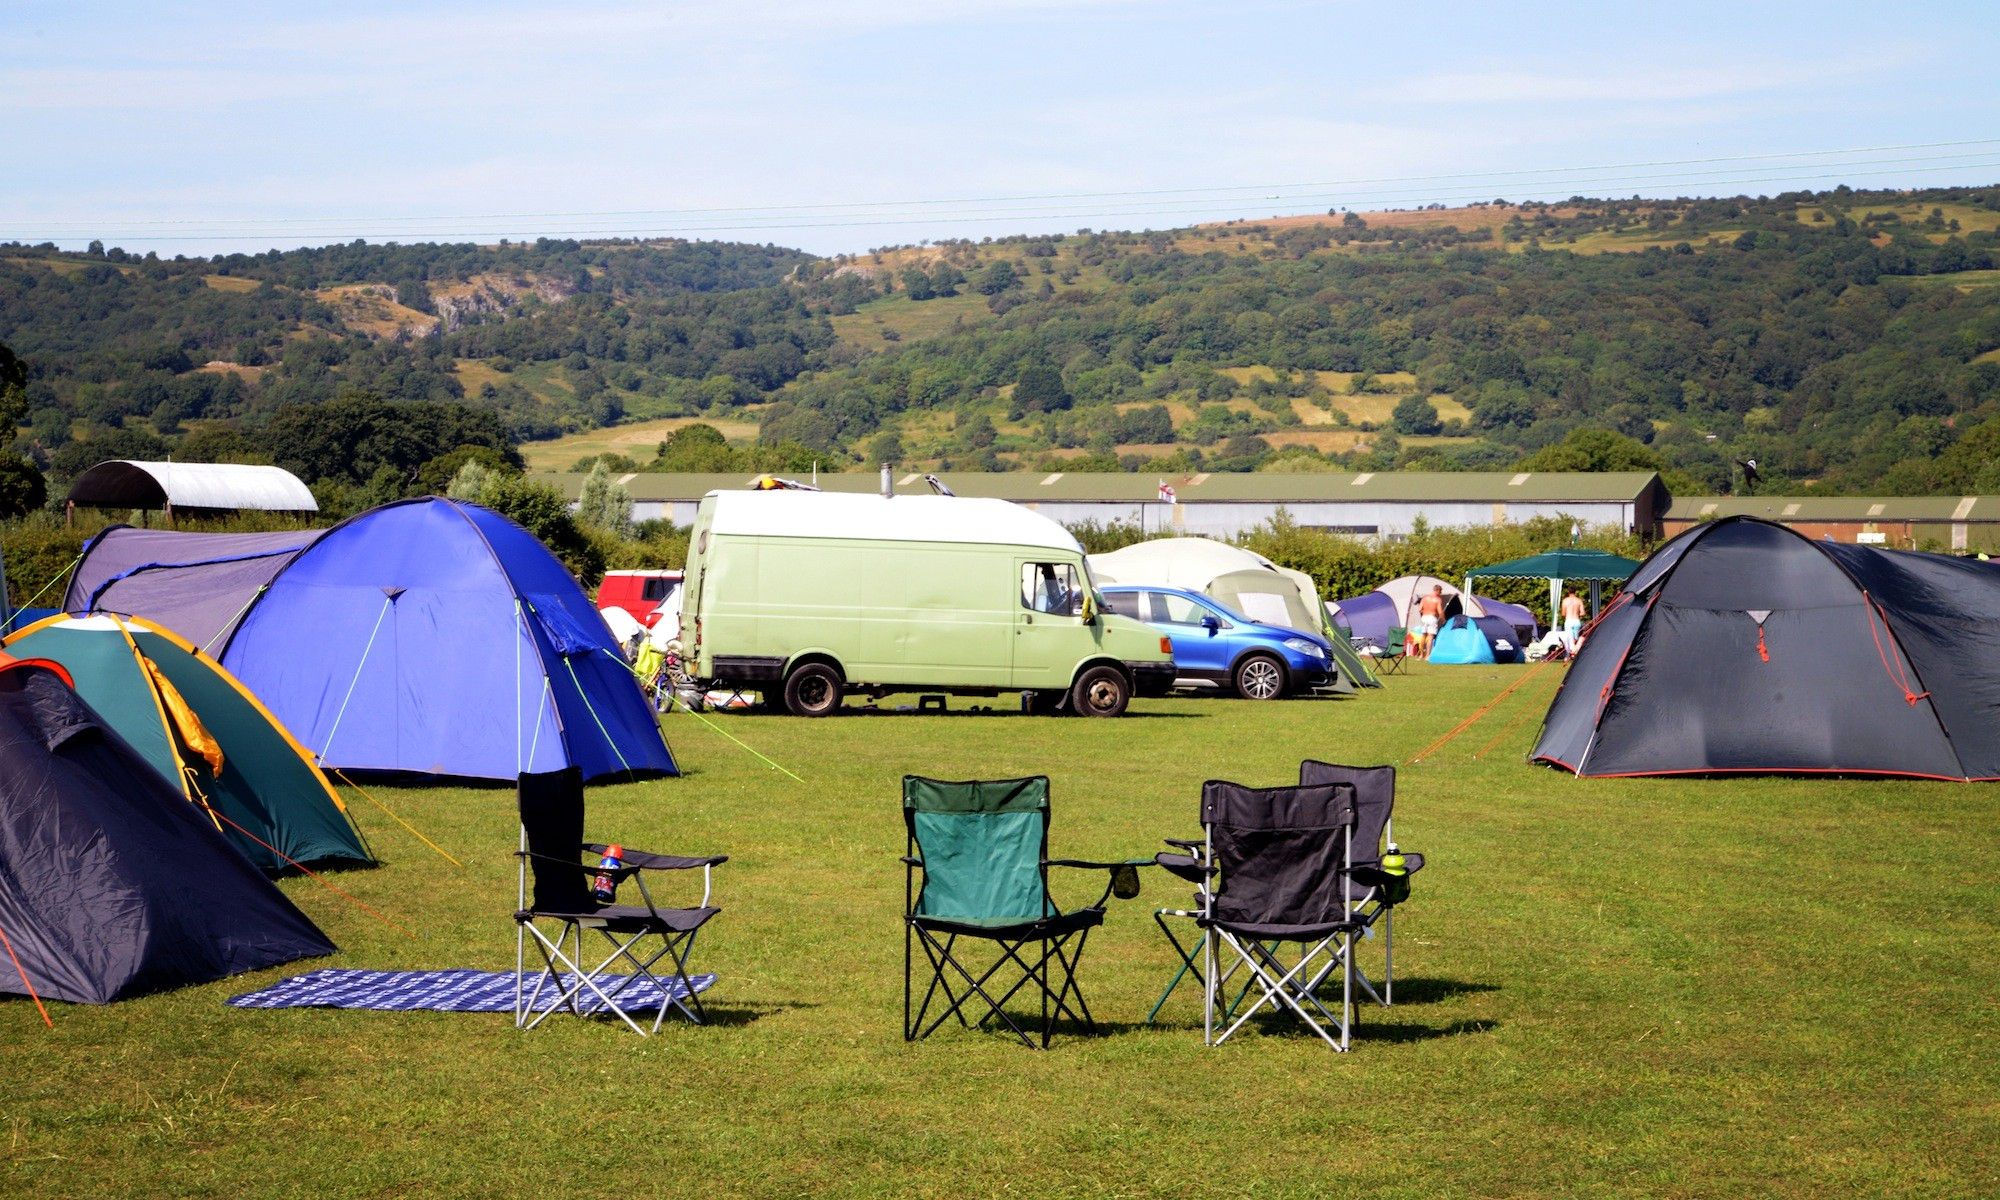 Glamping in the Mendip Hills – Best glampsites in the Mendi Hills AONB